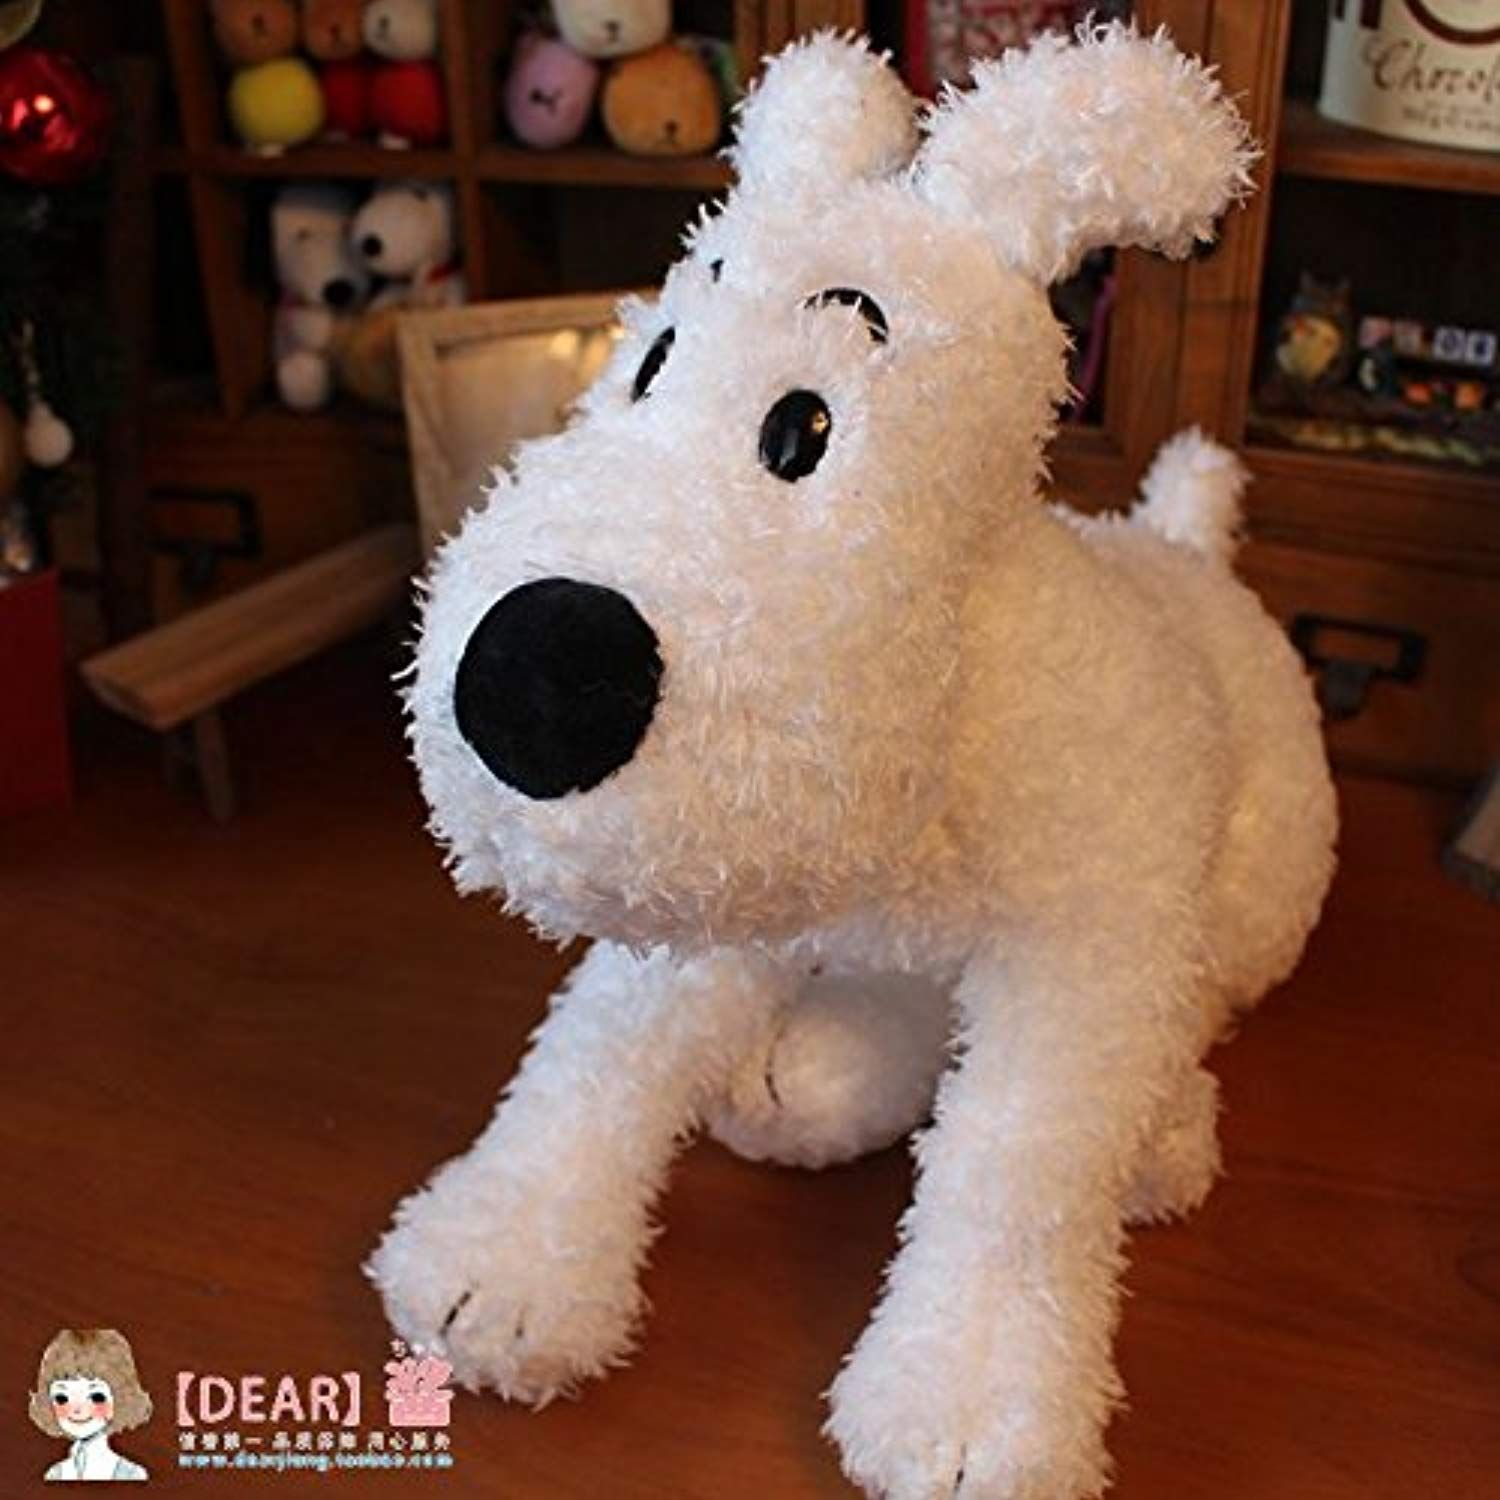 38 Cm The Adventure Of Tintin Snowy Dog Stuff Toy Be Sure To